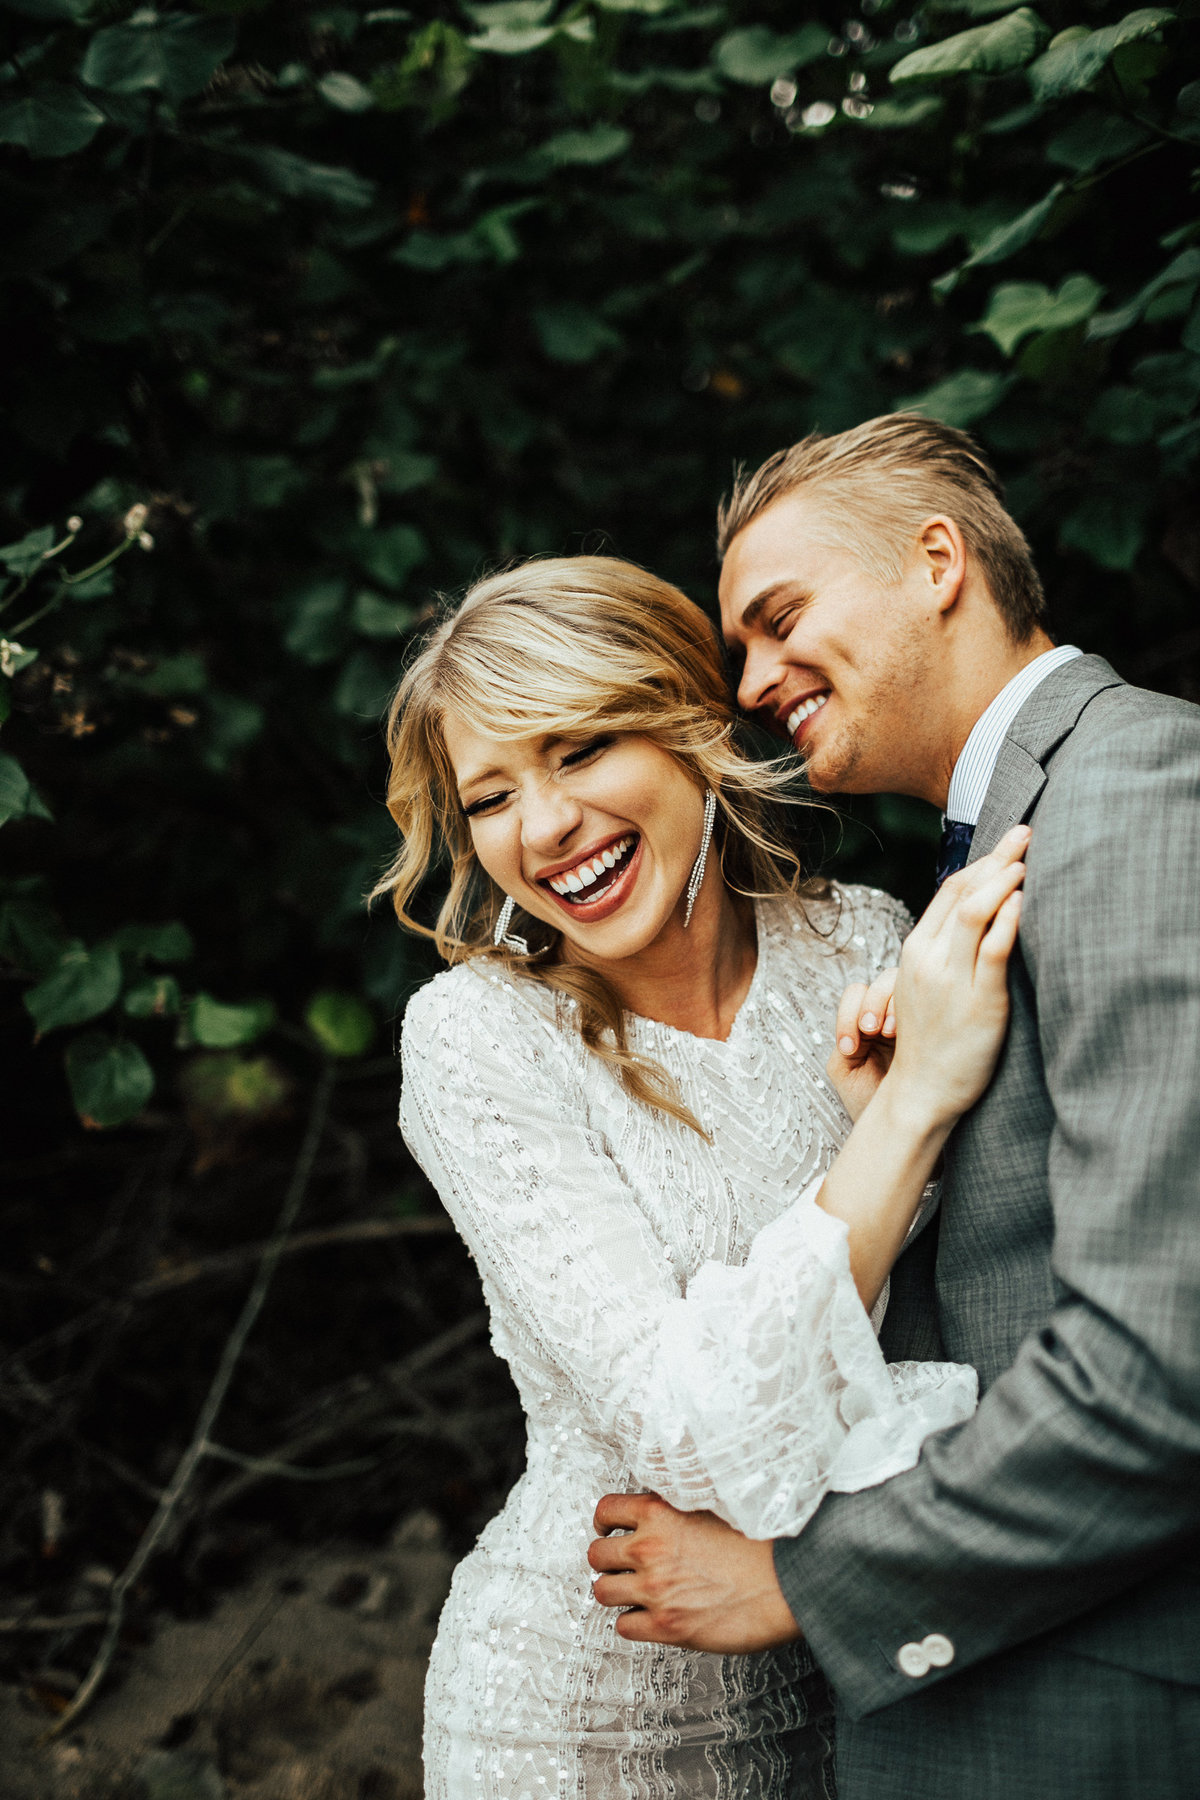 north-shore-oahu-hawaii-lindsey-roman-destination-elopement-photographer-2